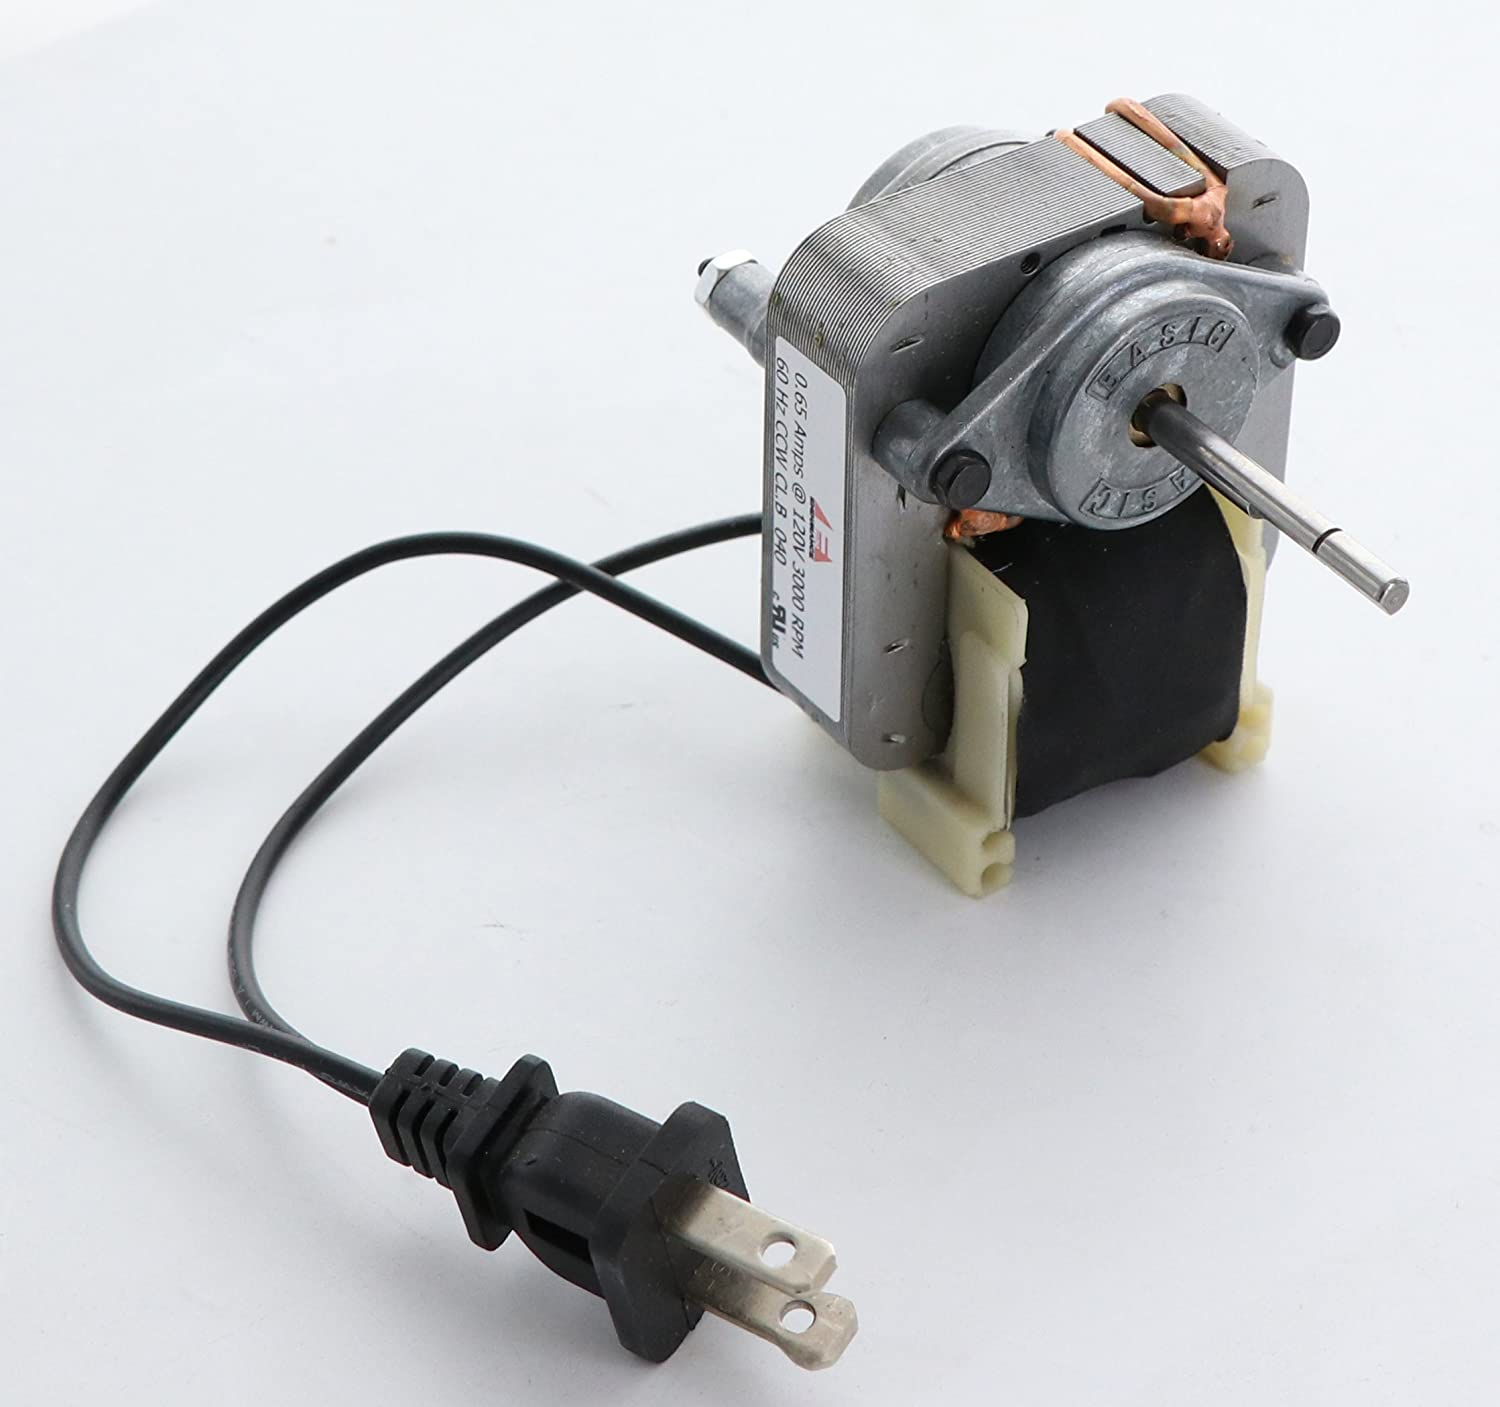 Electric Motors C01575 Replacement Motor Kit With Fan 120v In My Bathroom And Came Across Some Interesting To Me Anyway Wiring